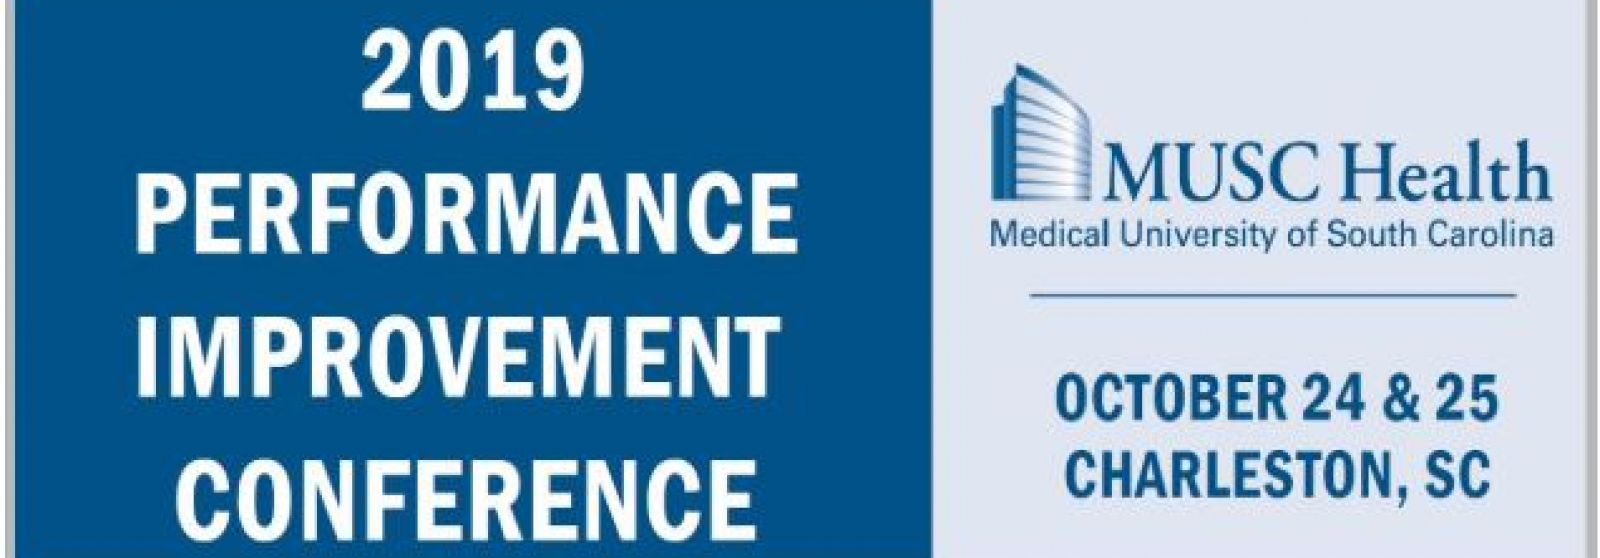 Performance Improvement Conference